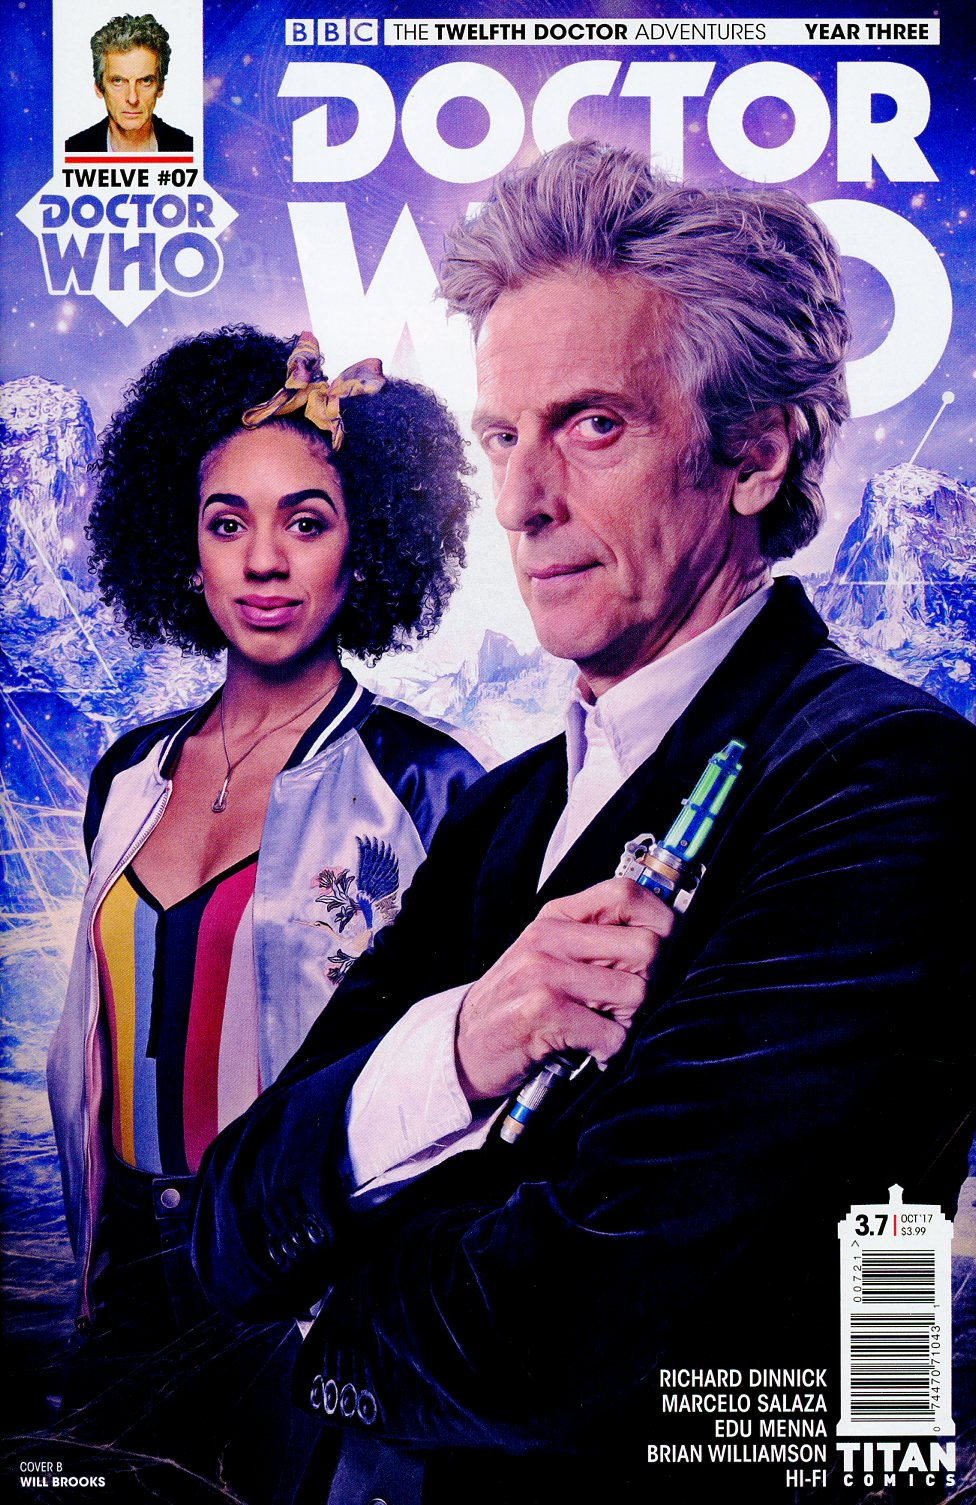 Doctor Who 12th Doctor Year Three #7 Cover B Variant Will Brooks Cover